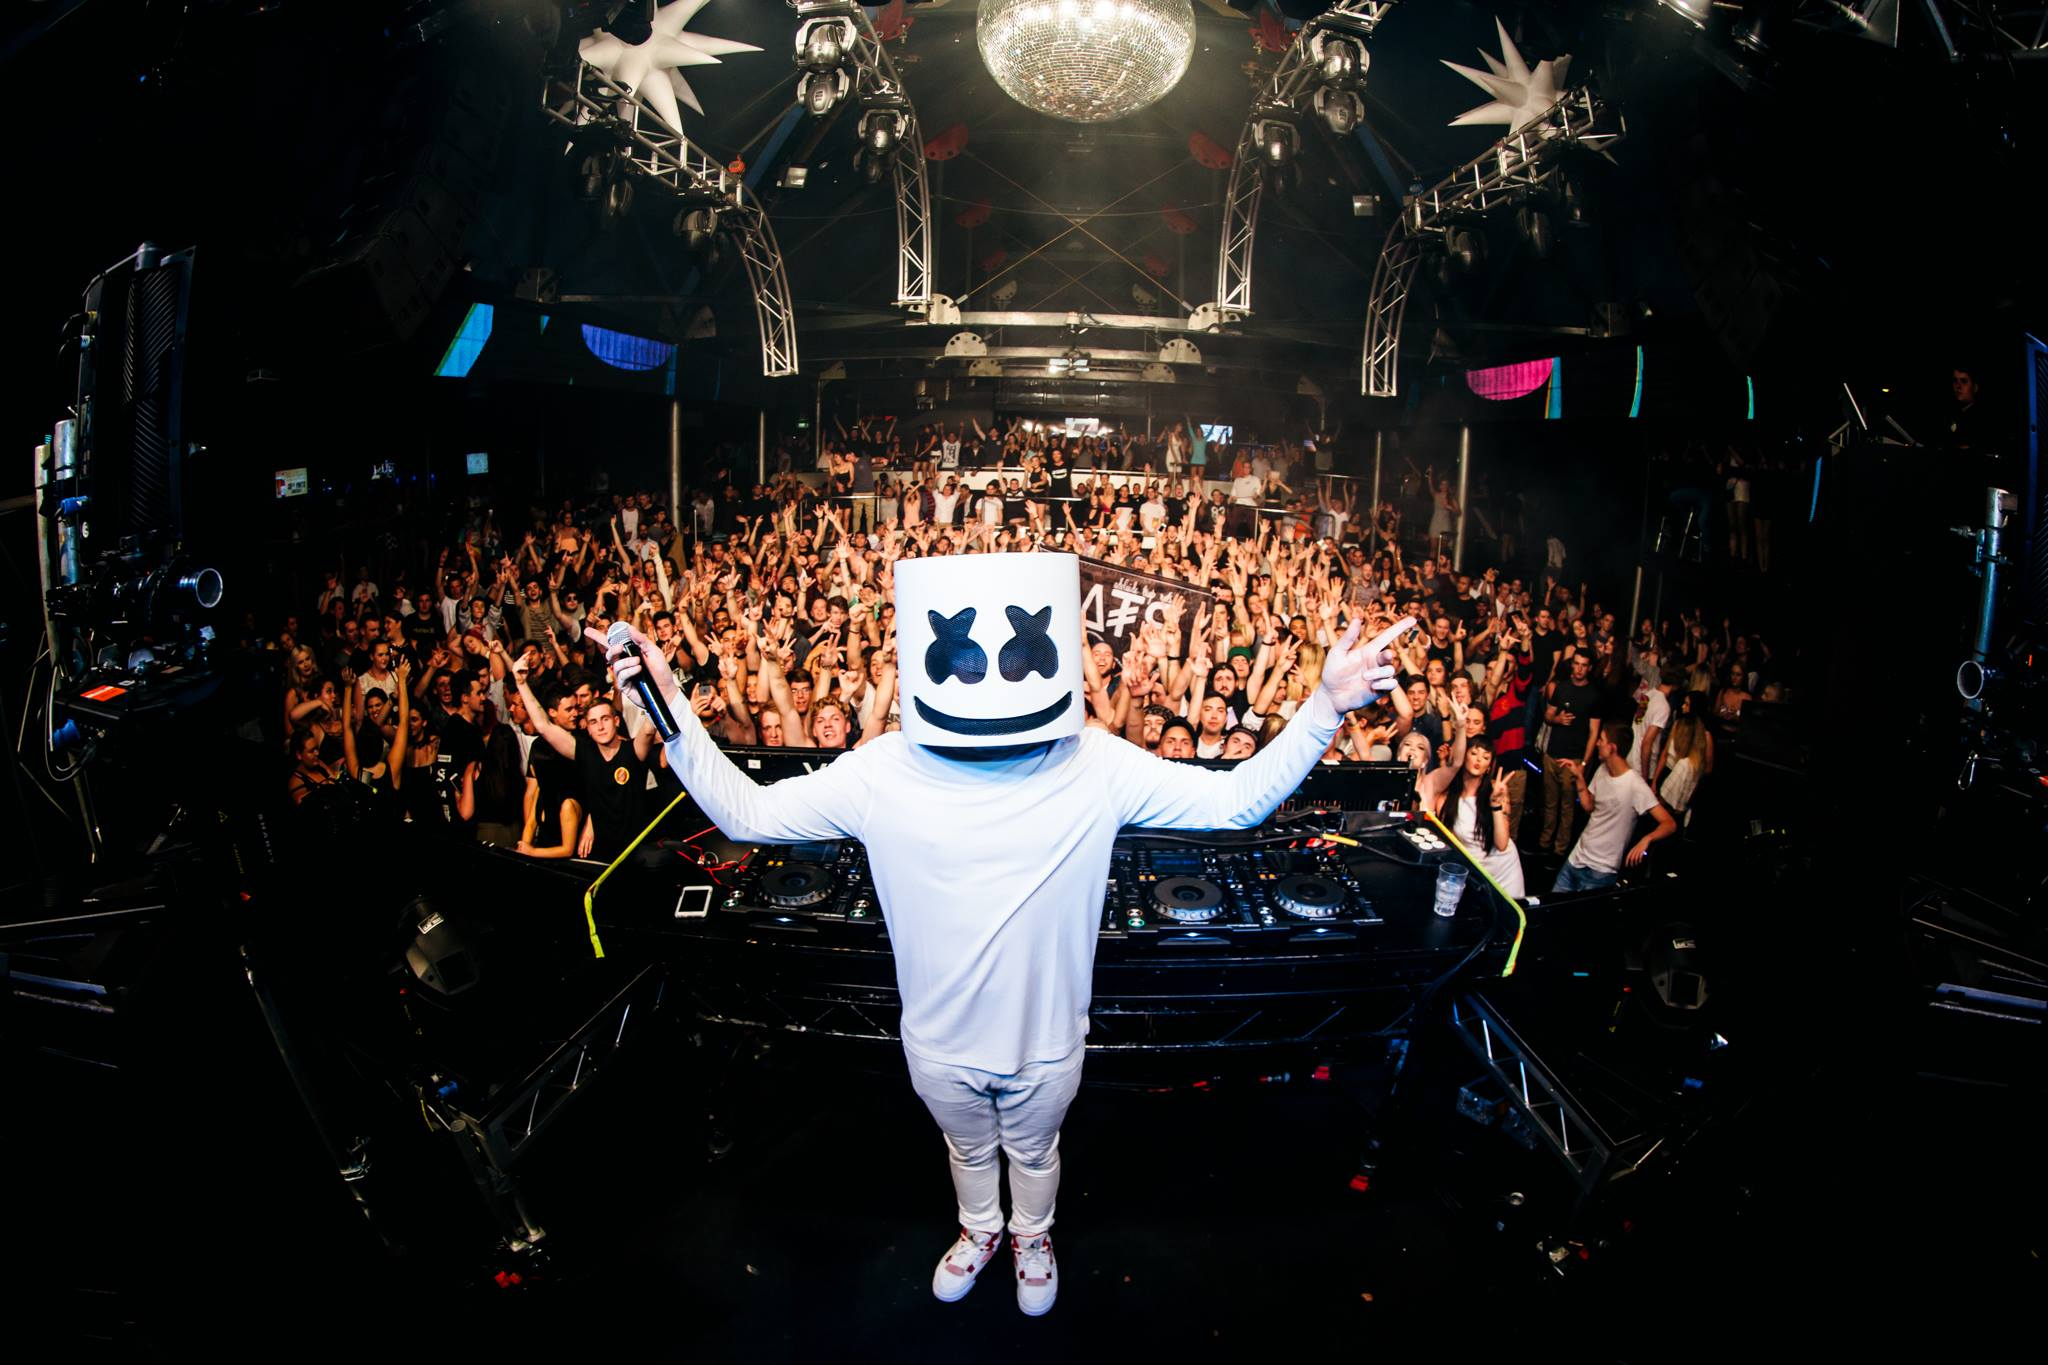 Marshmello Wallpaper - FunDJStuff.com